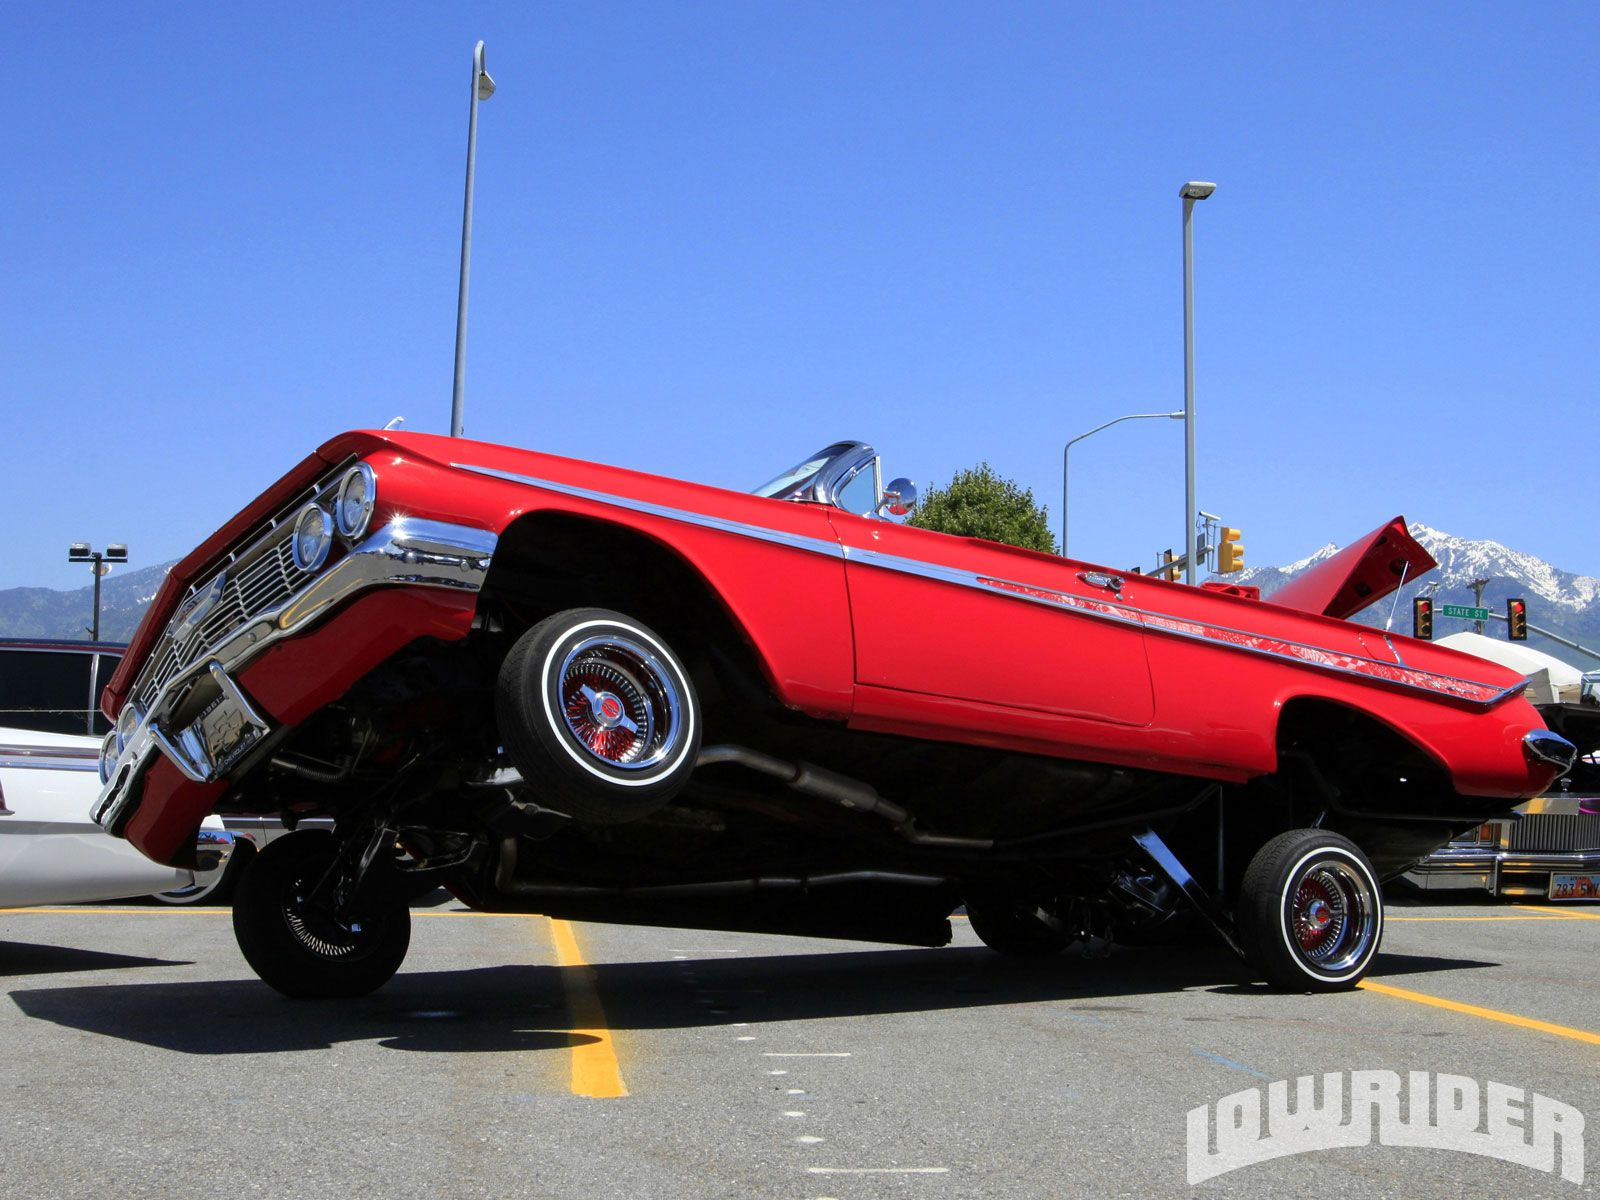 Cars With Hydraulics: A Dropper Is A Potential Term For Those With Tricked Out